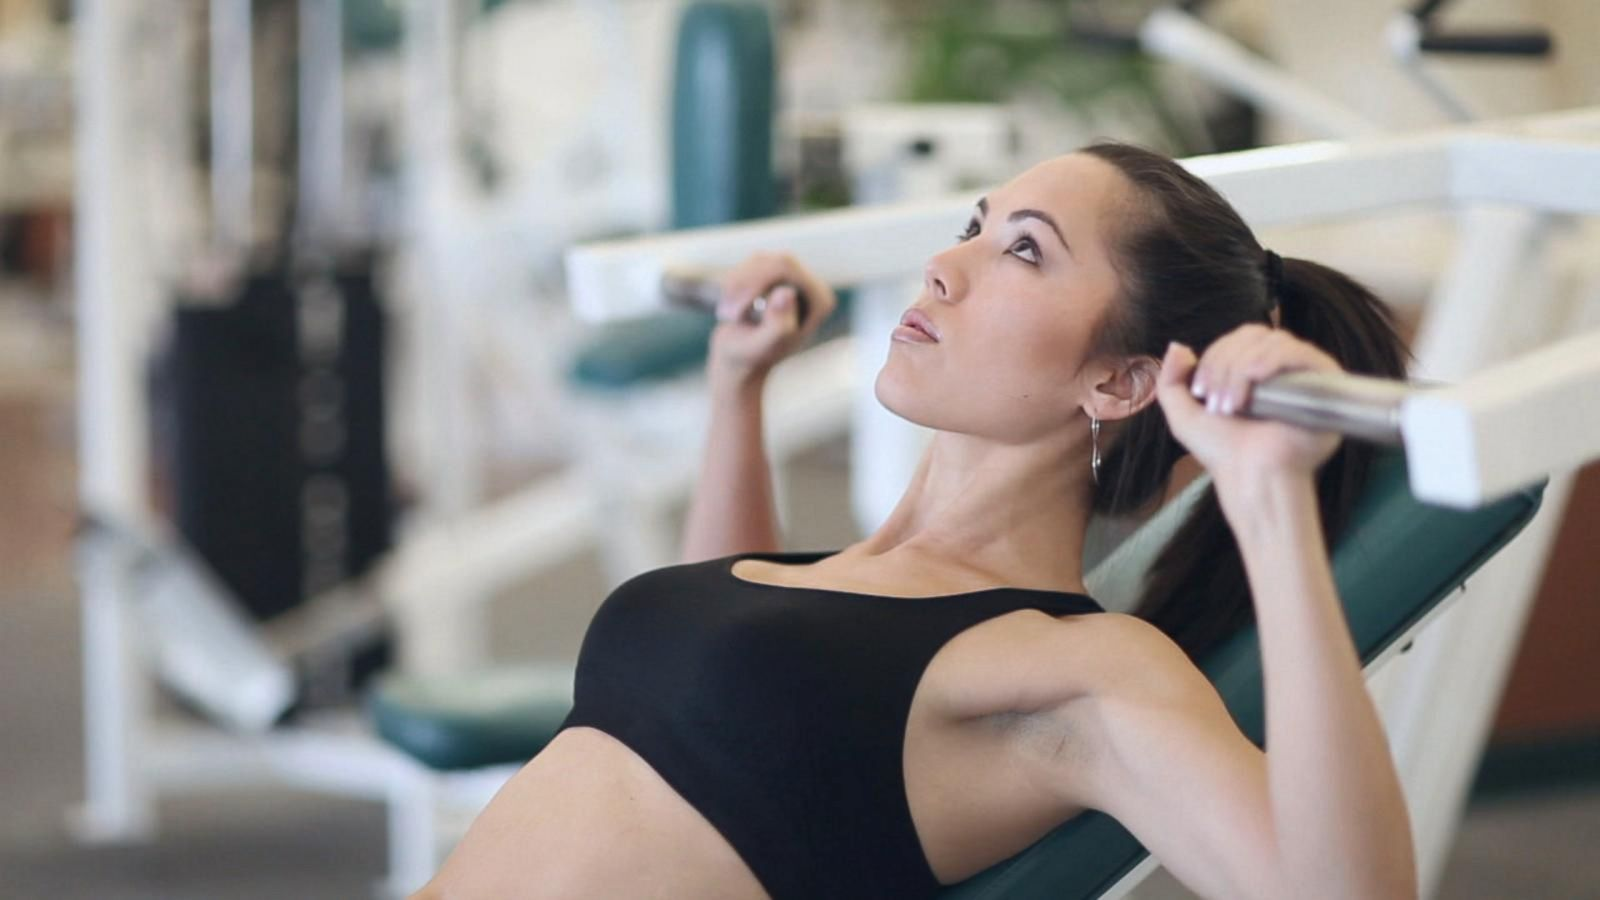 VIDEO: New Medical Study on Healthiest Time to Exercise